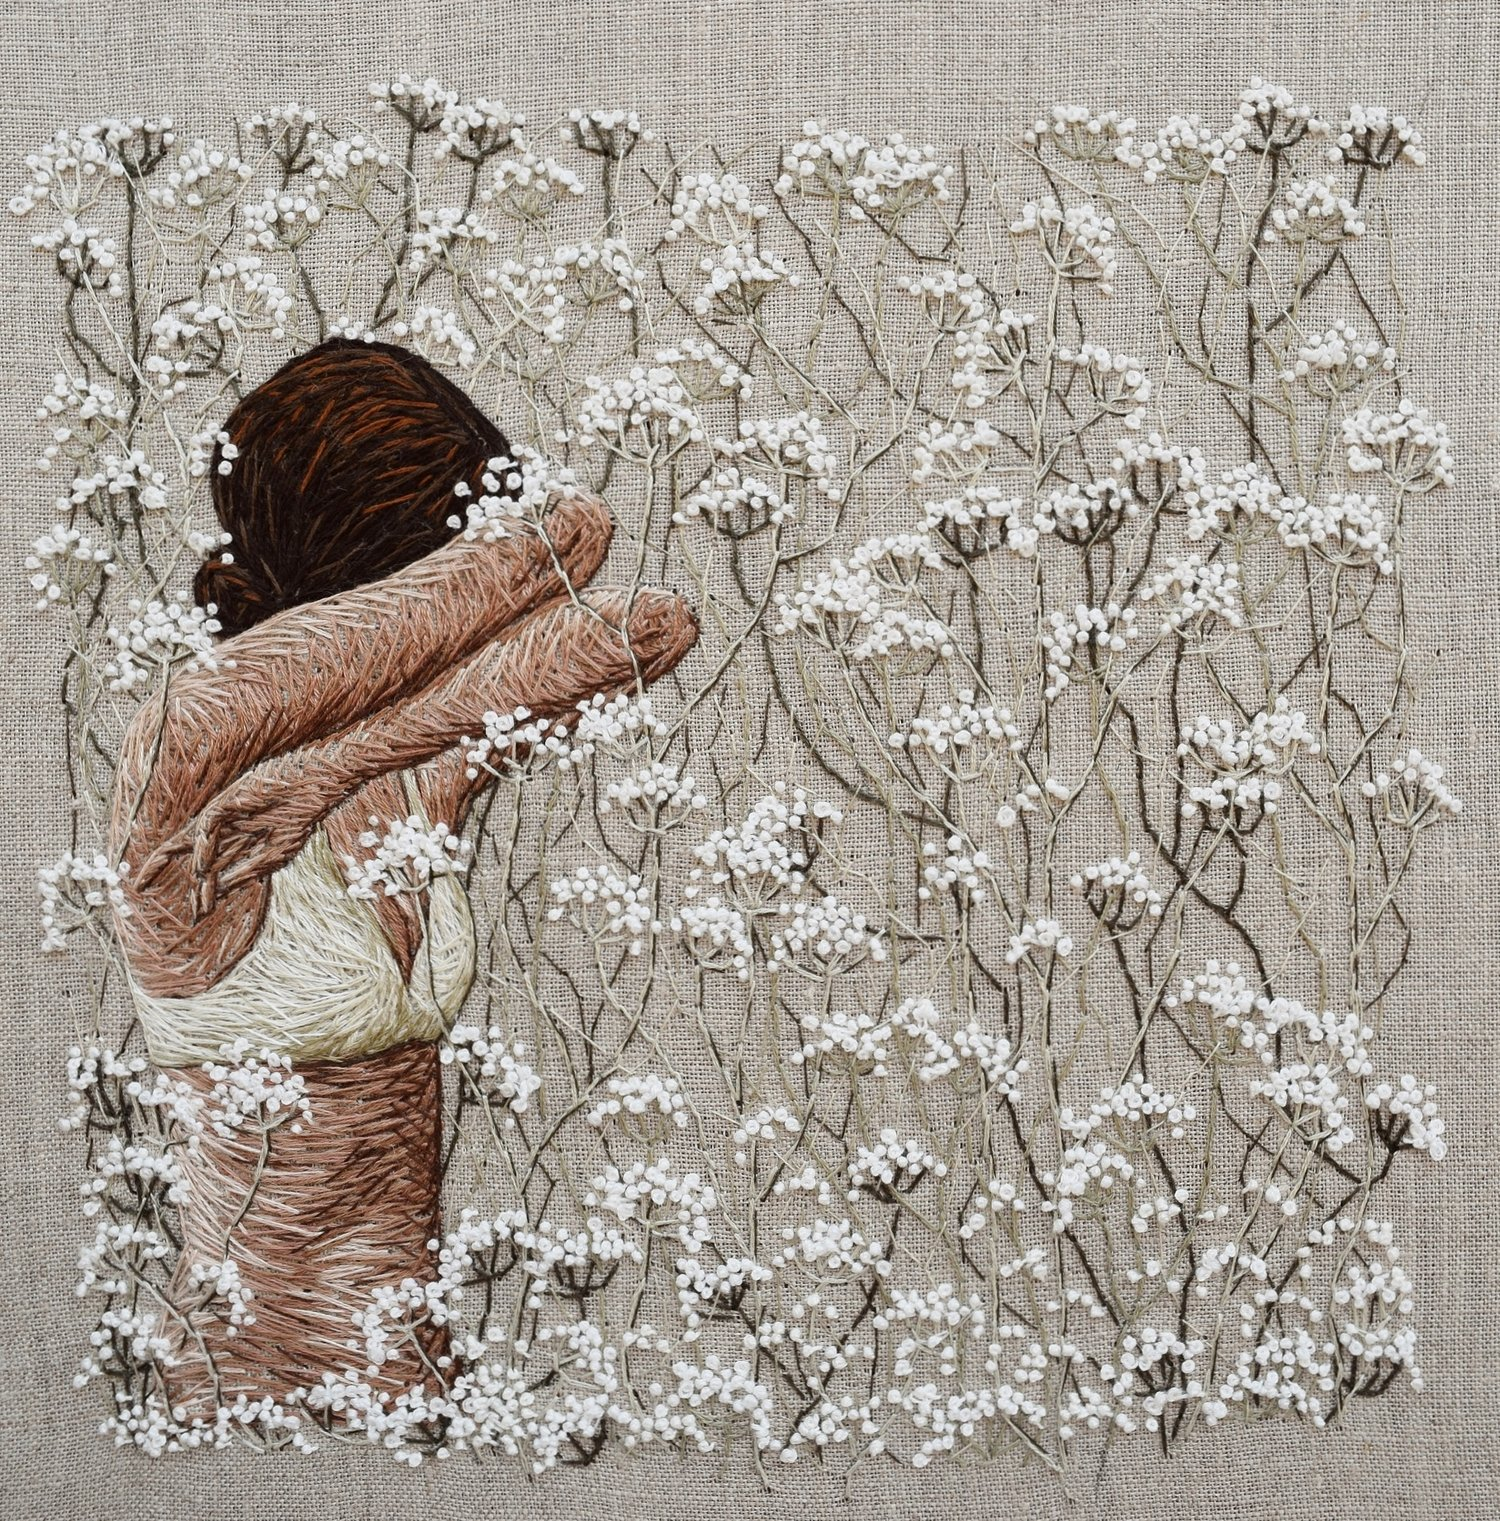 Original embroidery by Michelle Kingdom, featured by Sarah K. Benning in the series Craft With Conscience